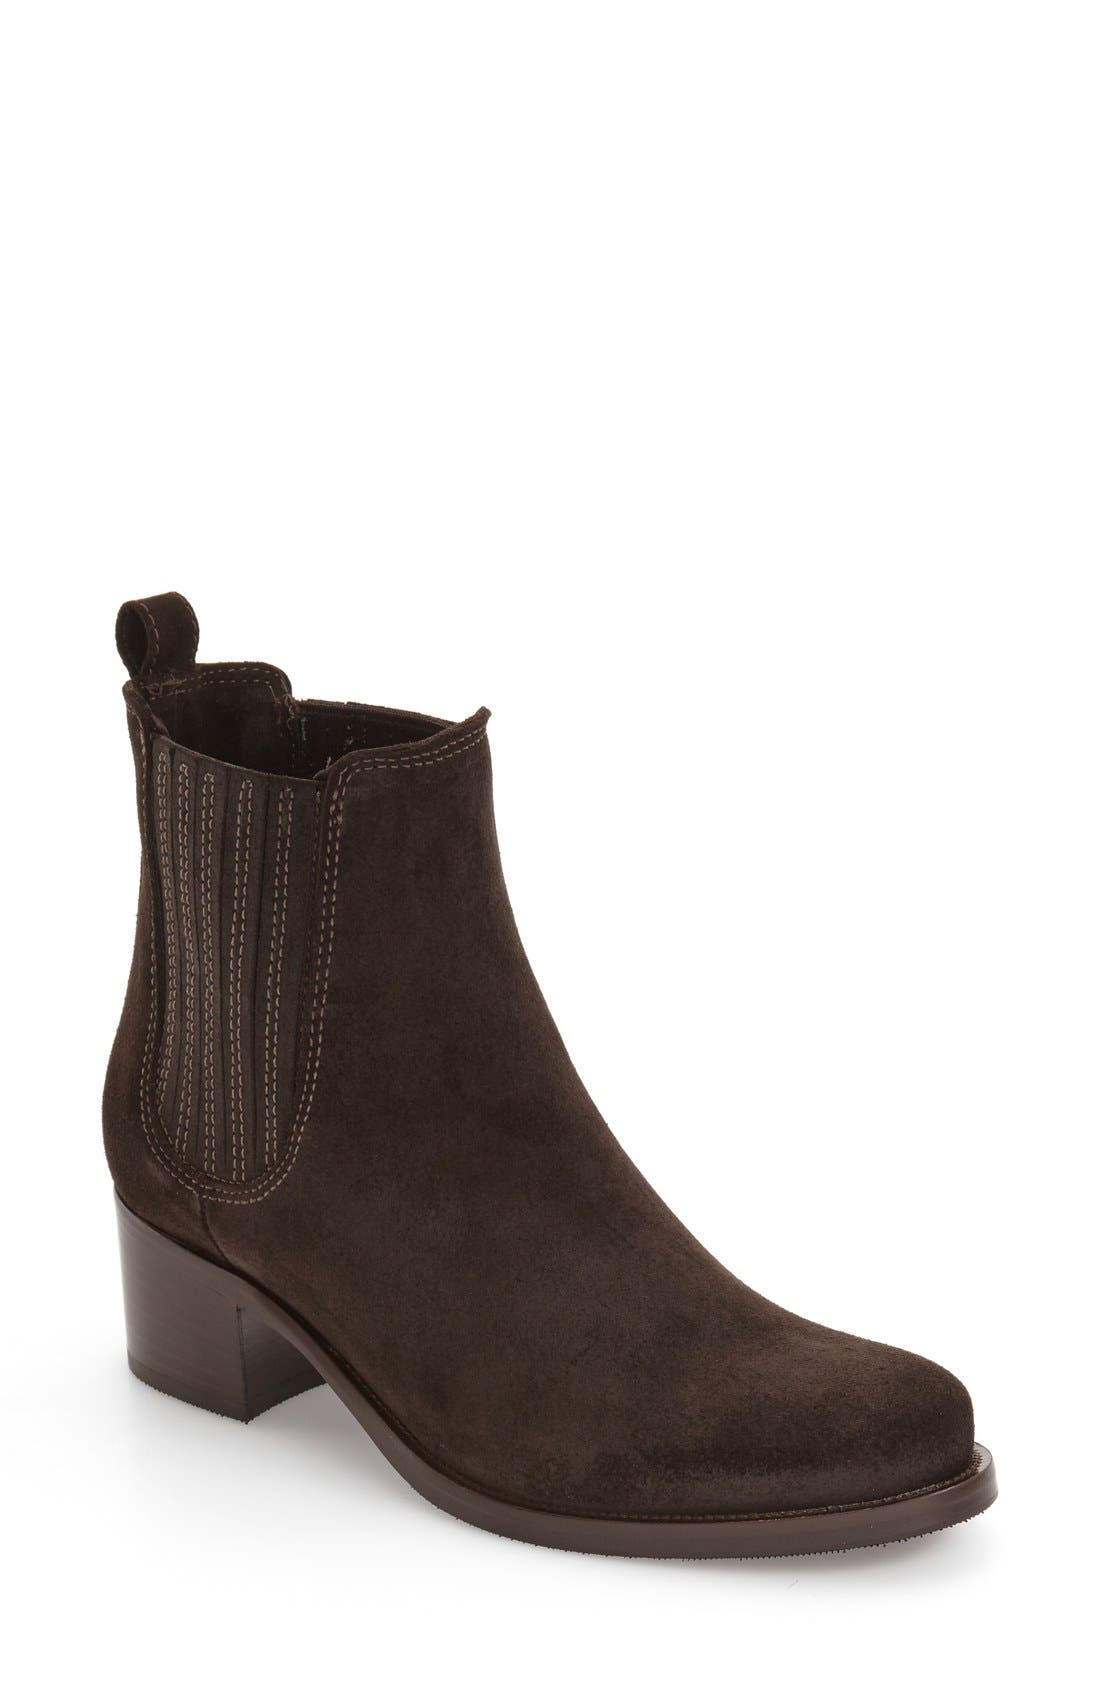 Prince Waterproof Bootie,                             Main thumbnail 1, color,                             Brown Suede